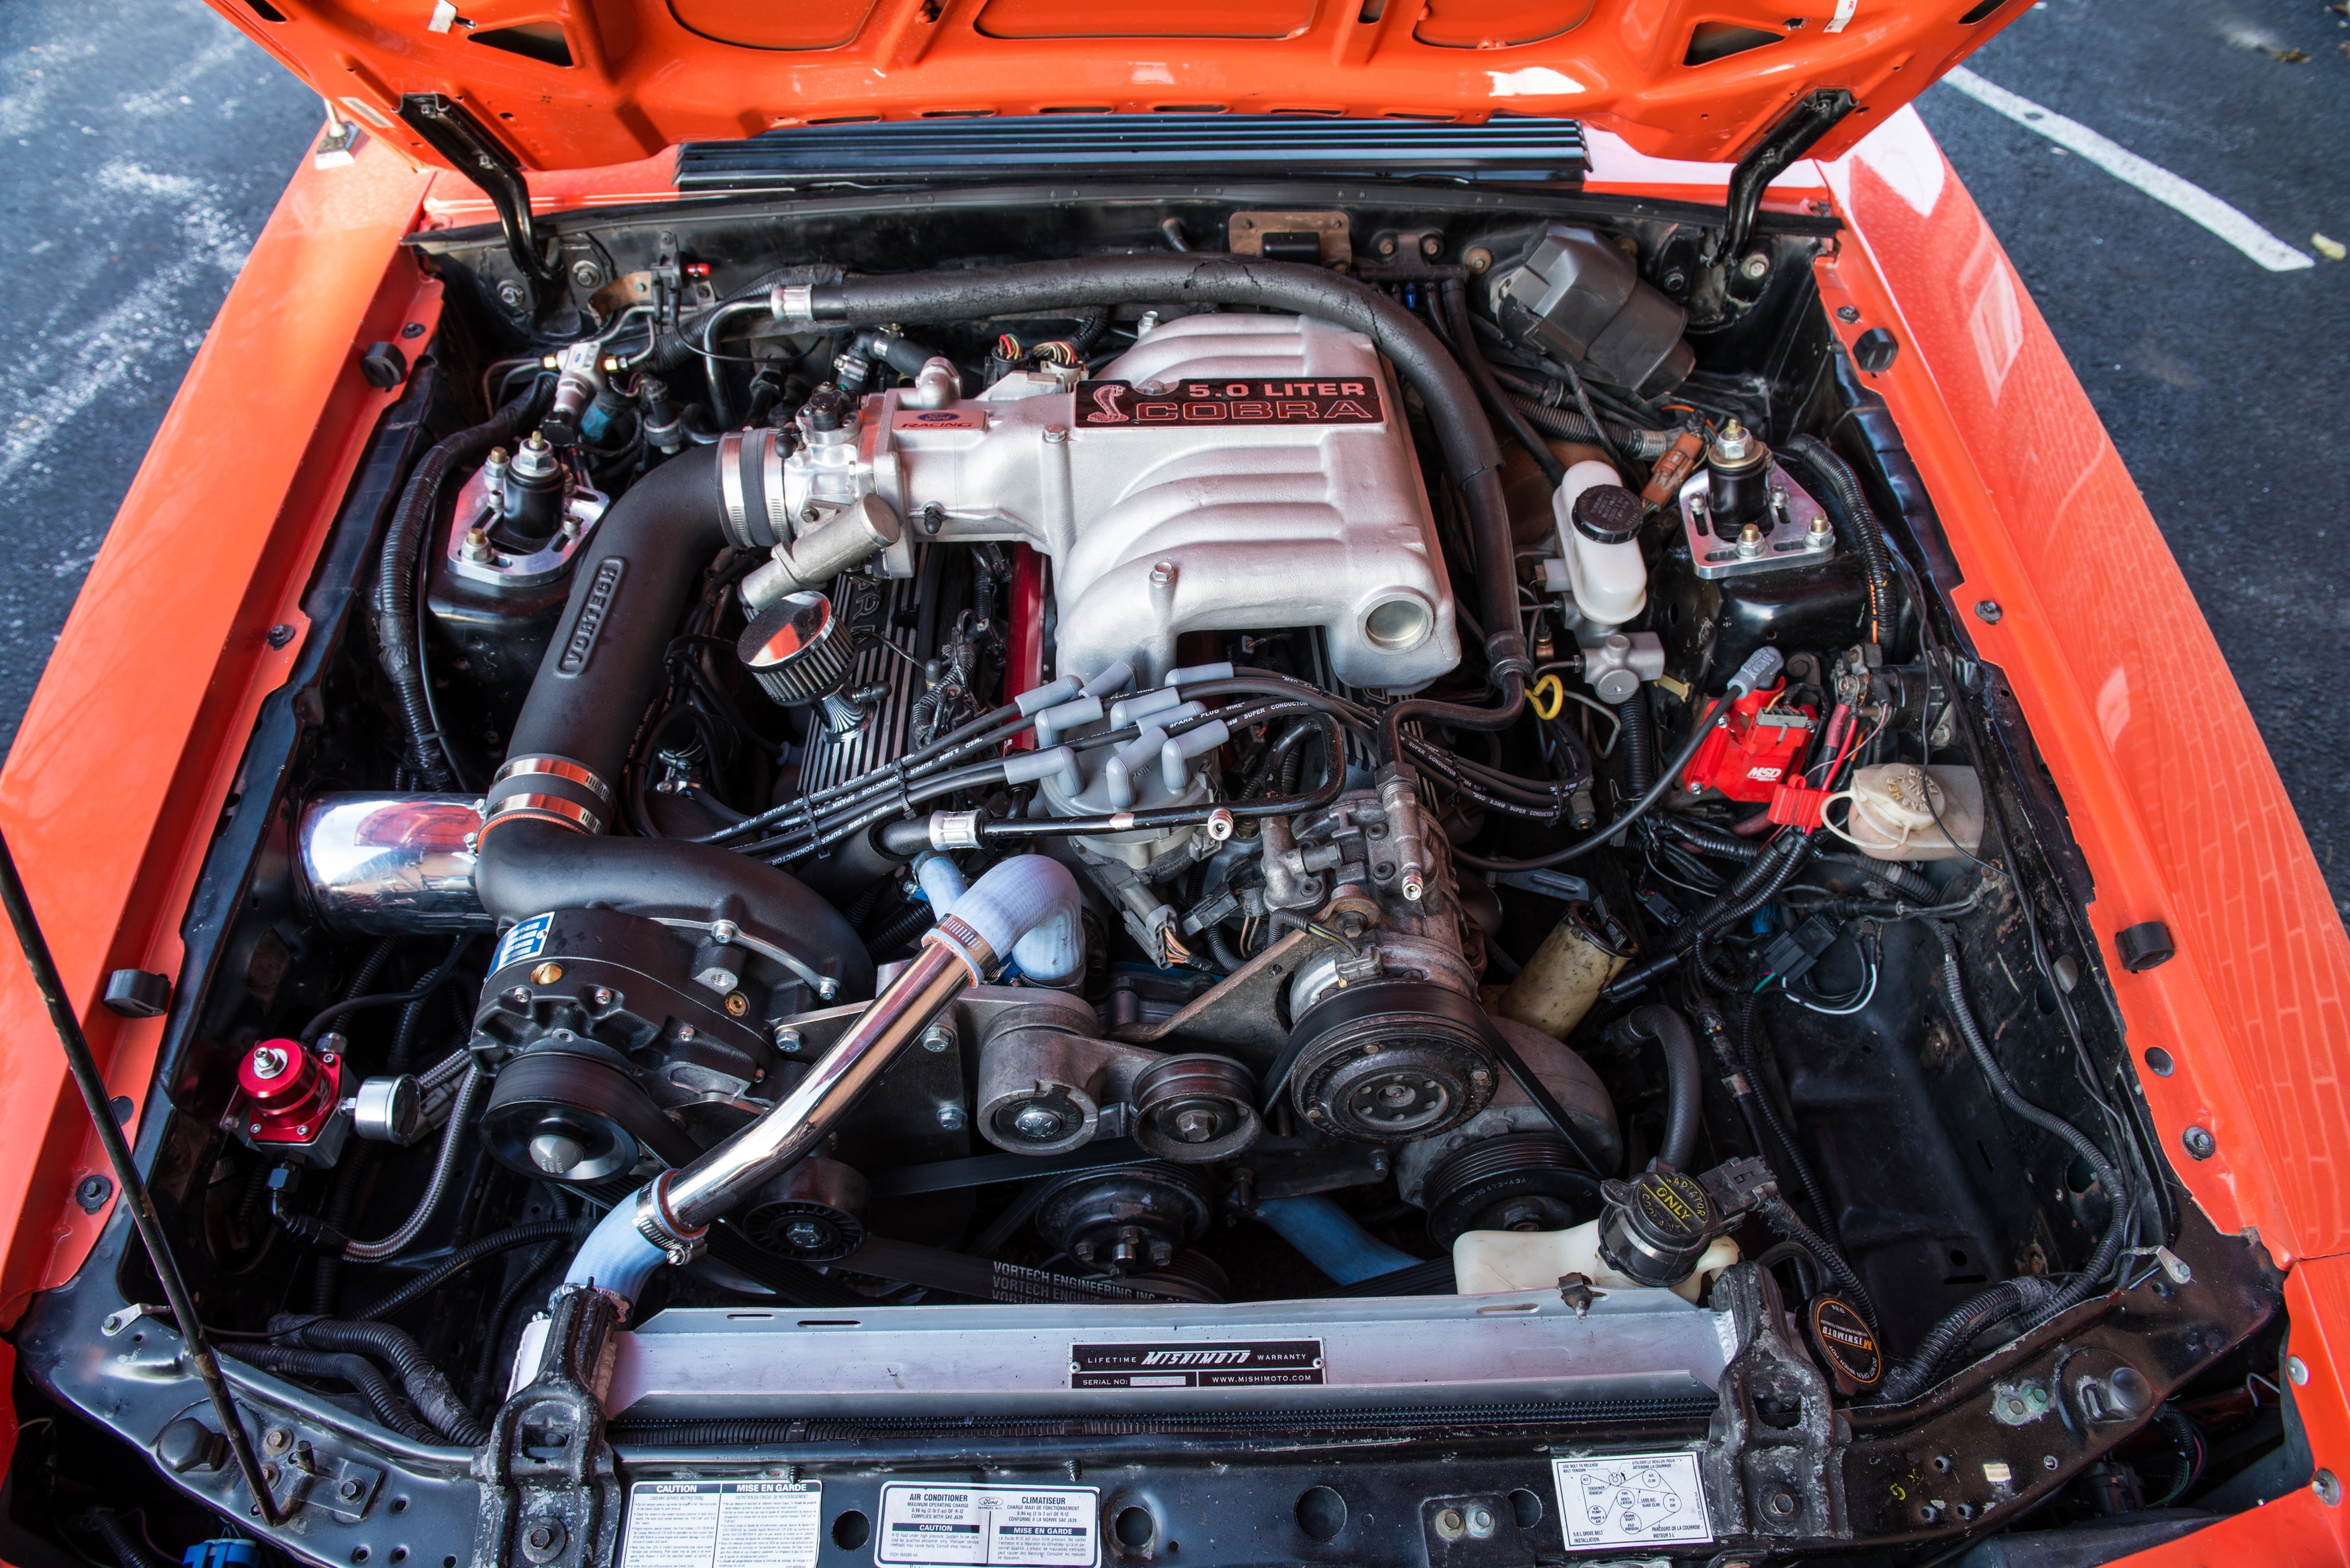 Video Stage 4 Project Fox Body Goes 11s In The Quarter